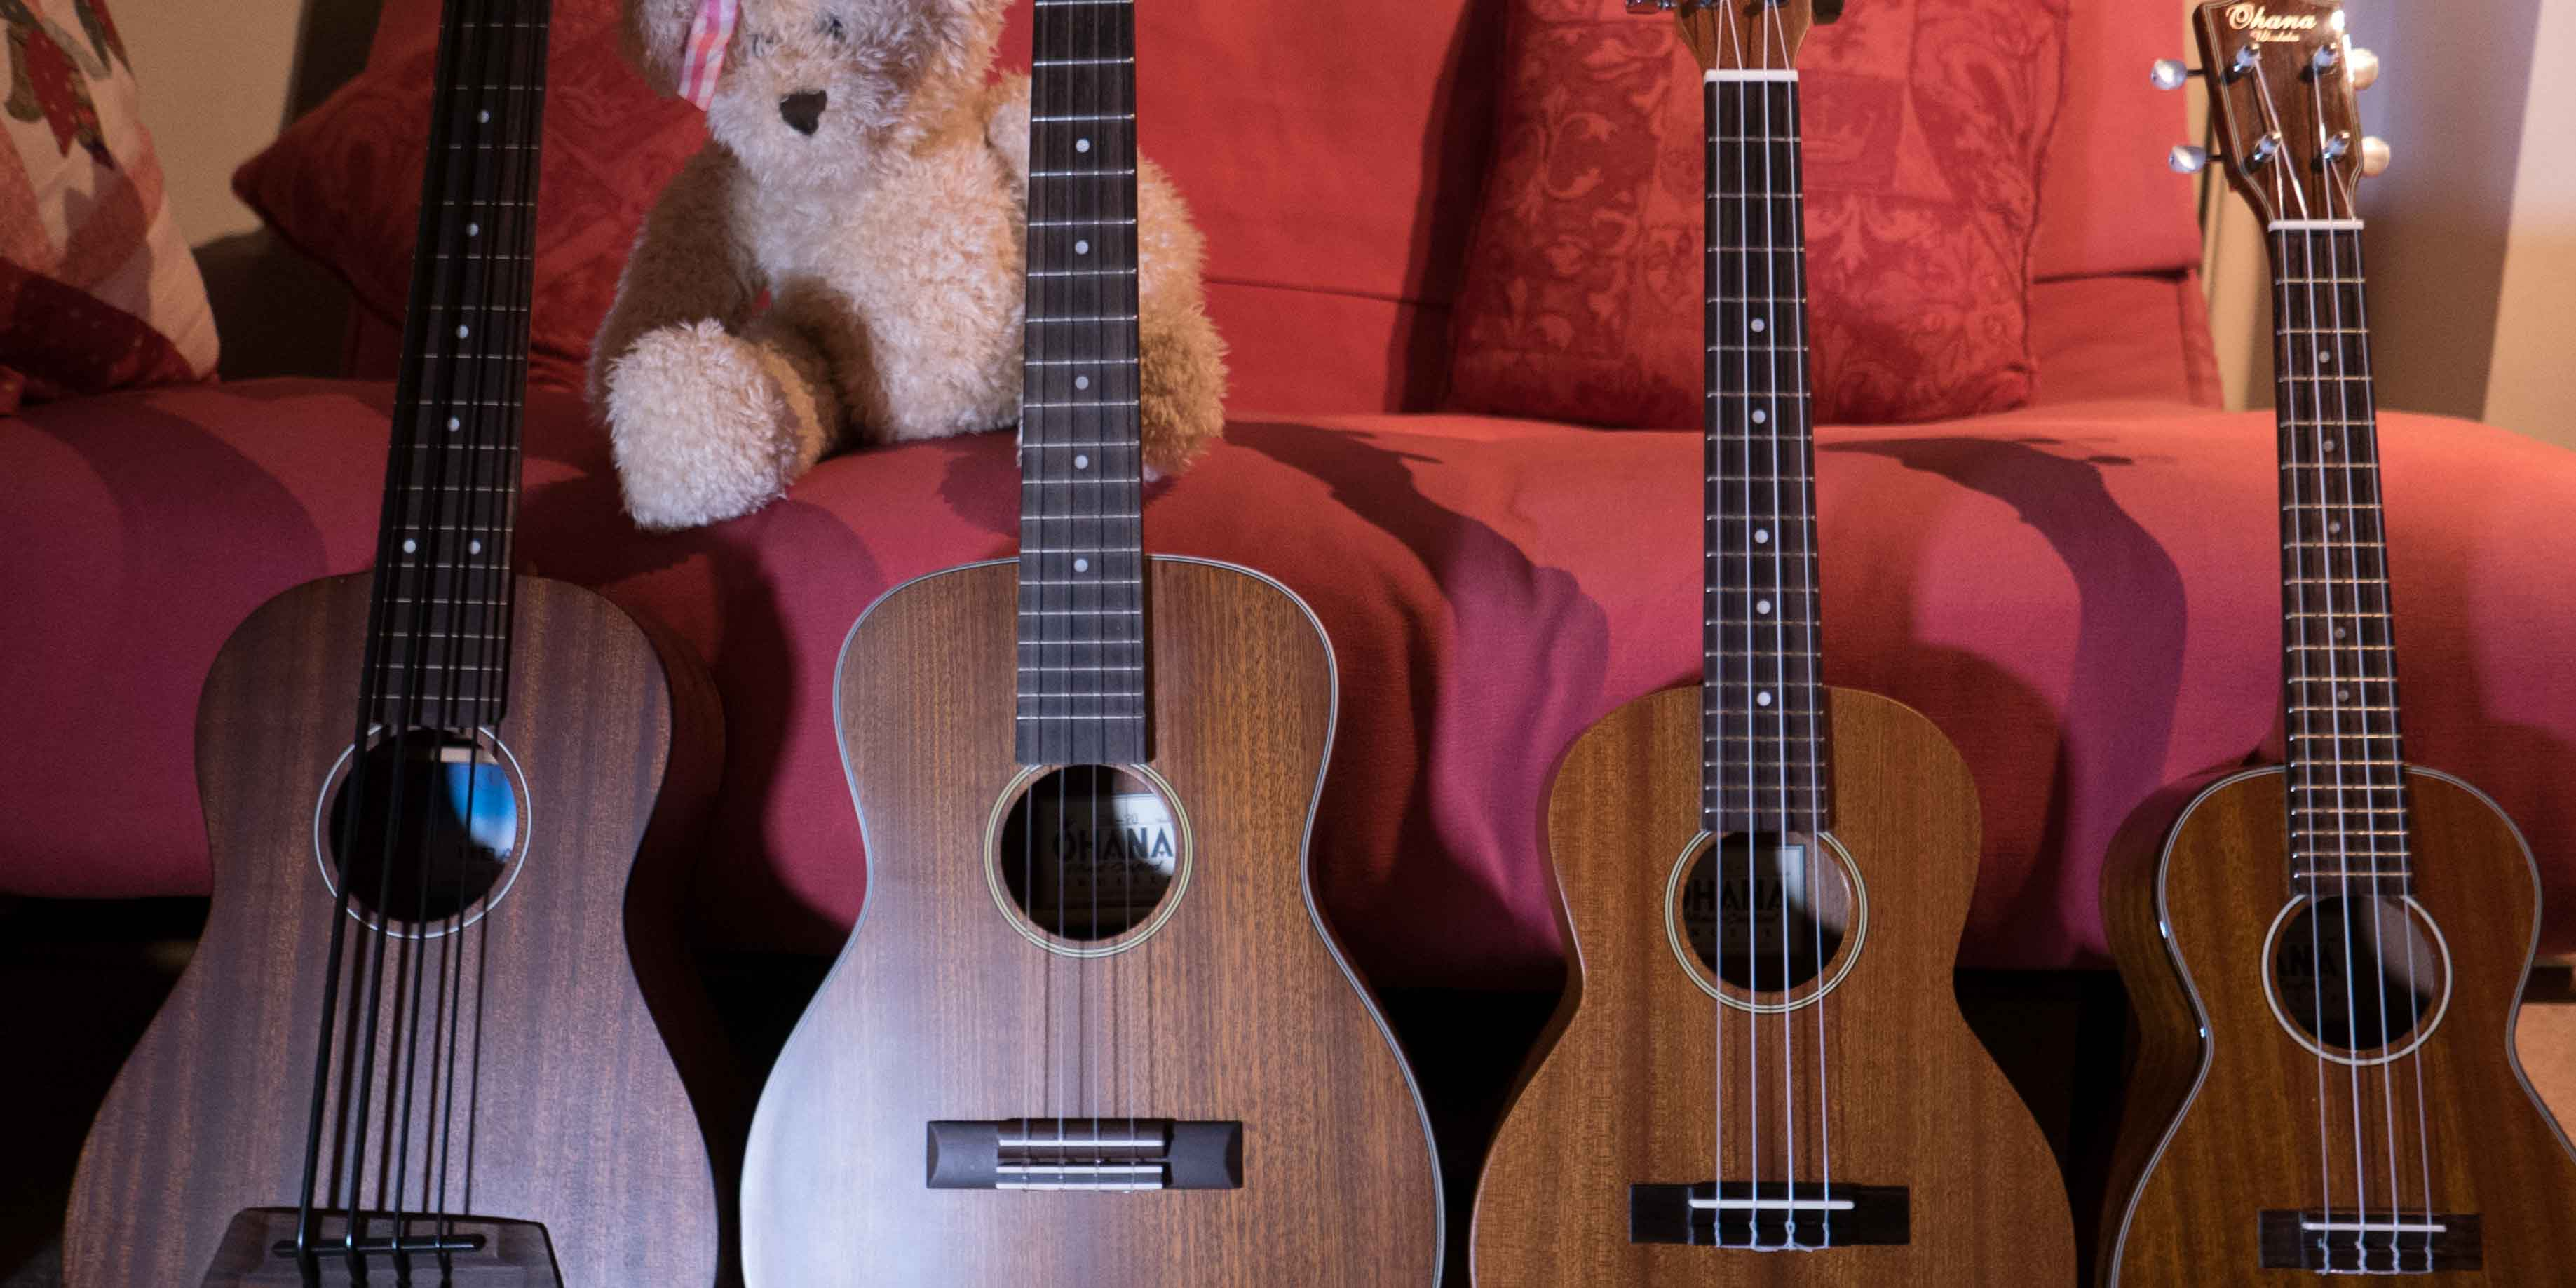 4 Ukuleles and Teddy